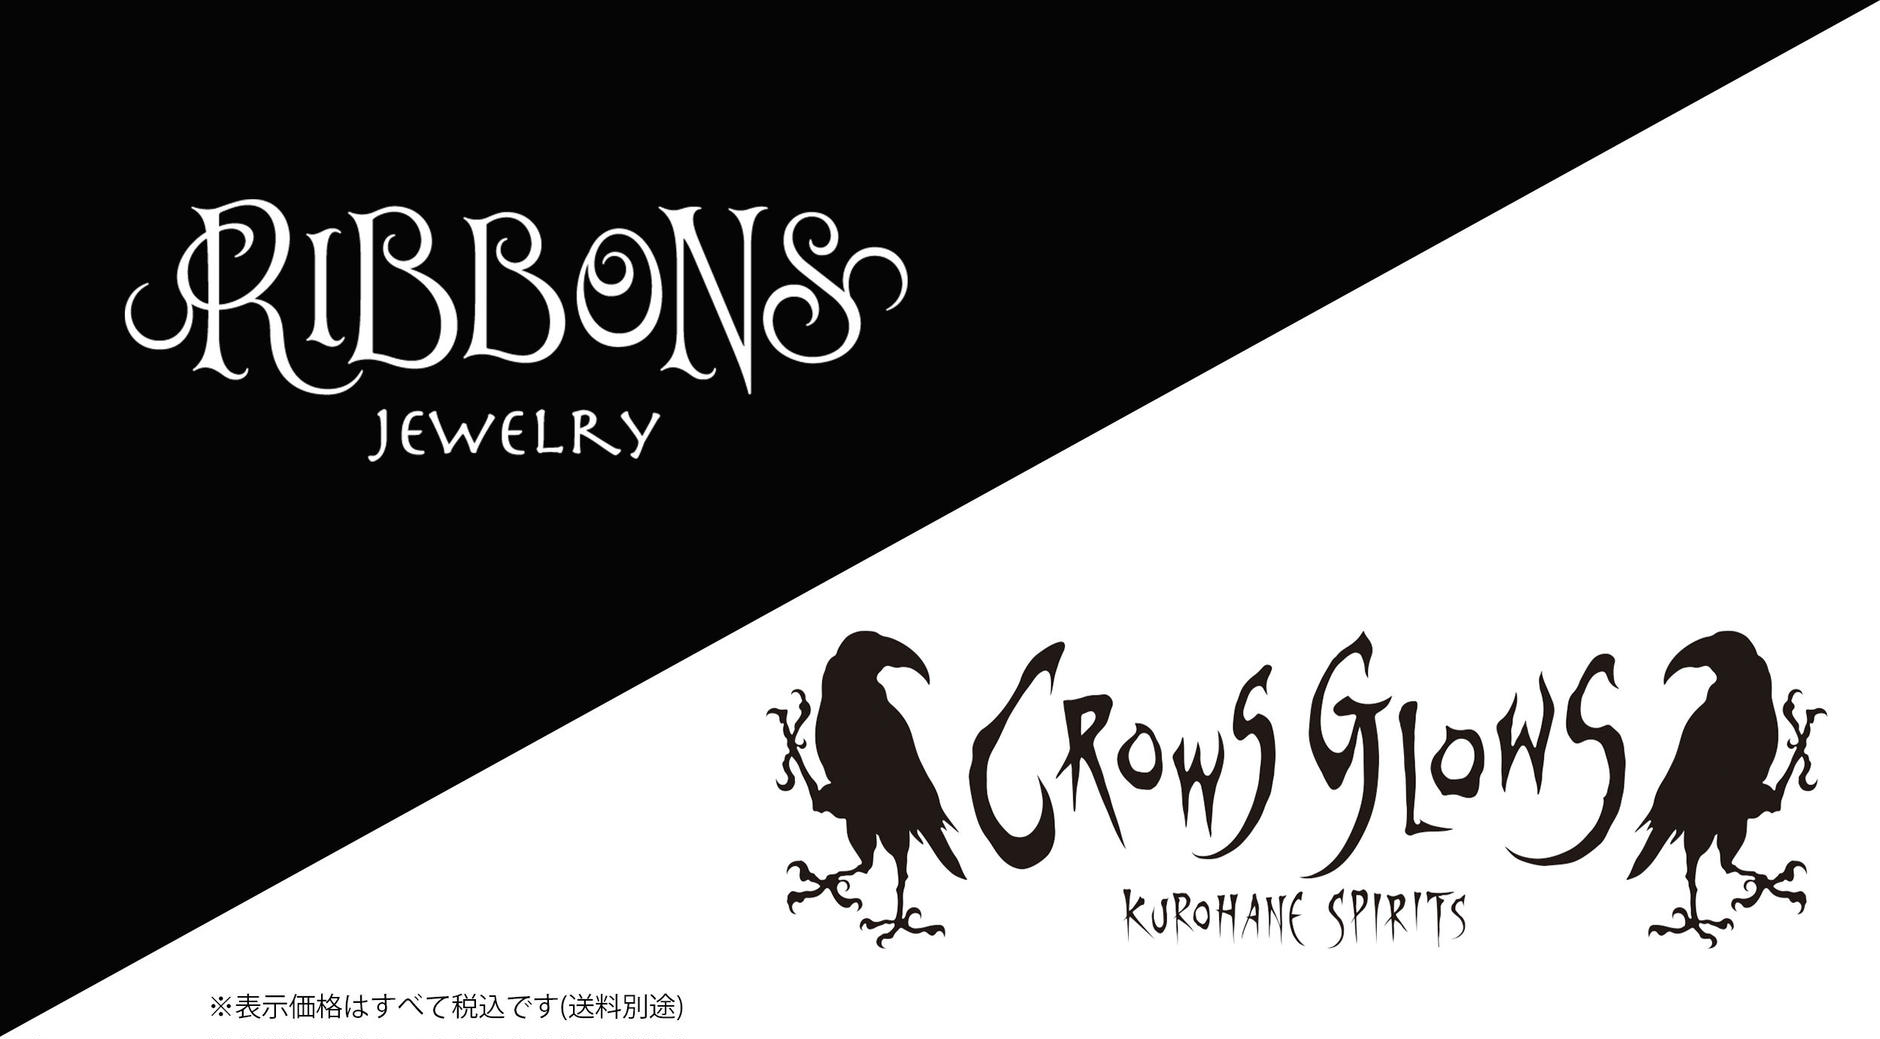 RIBBONS JEWELRY / CROWS GLOWS( シルバーアクセサリー)